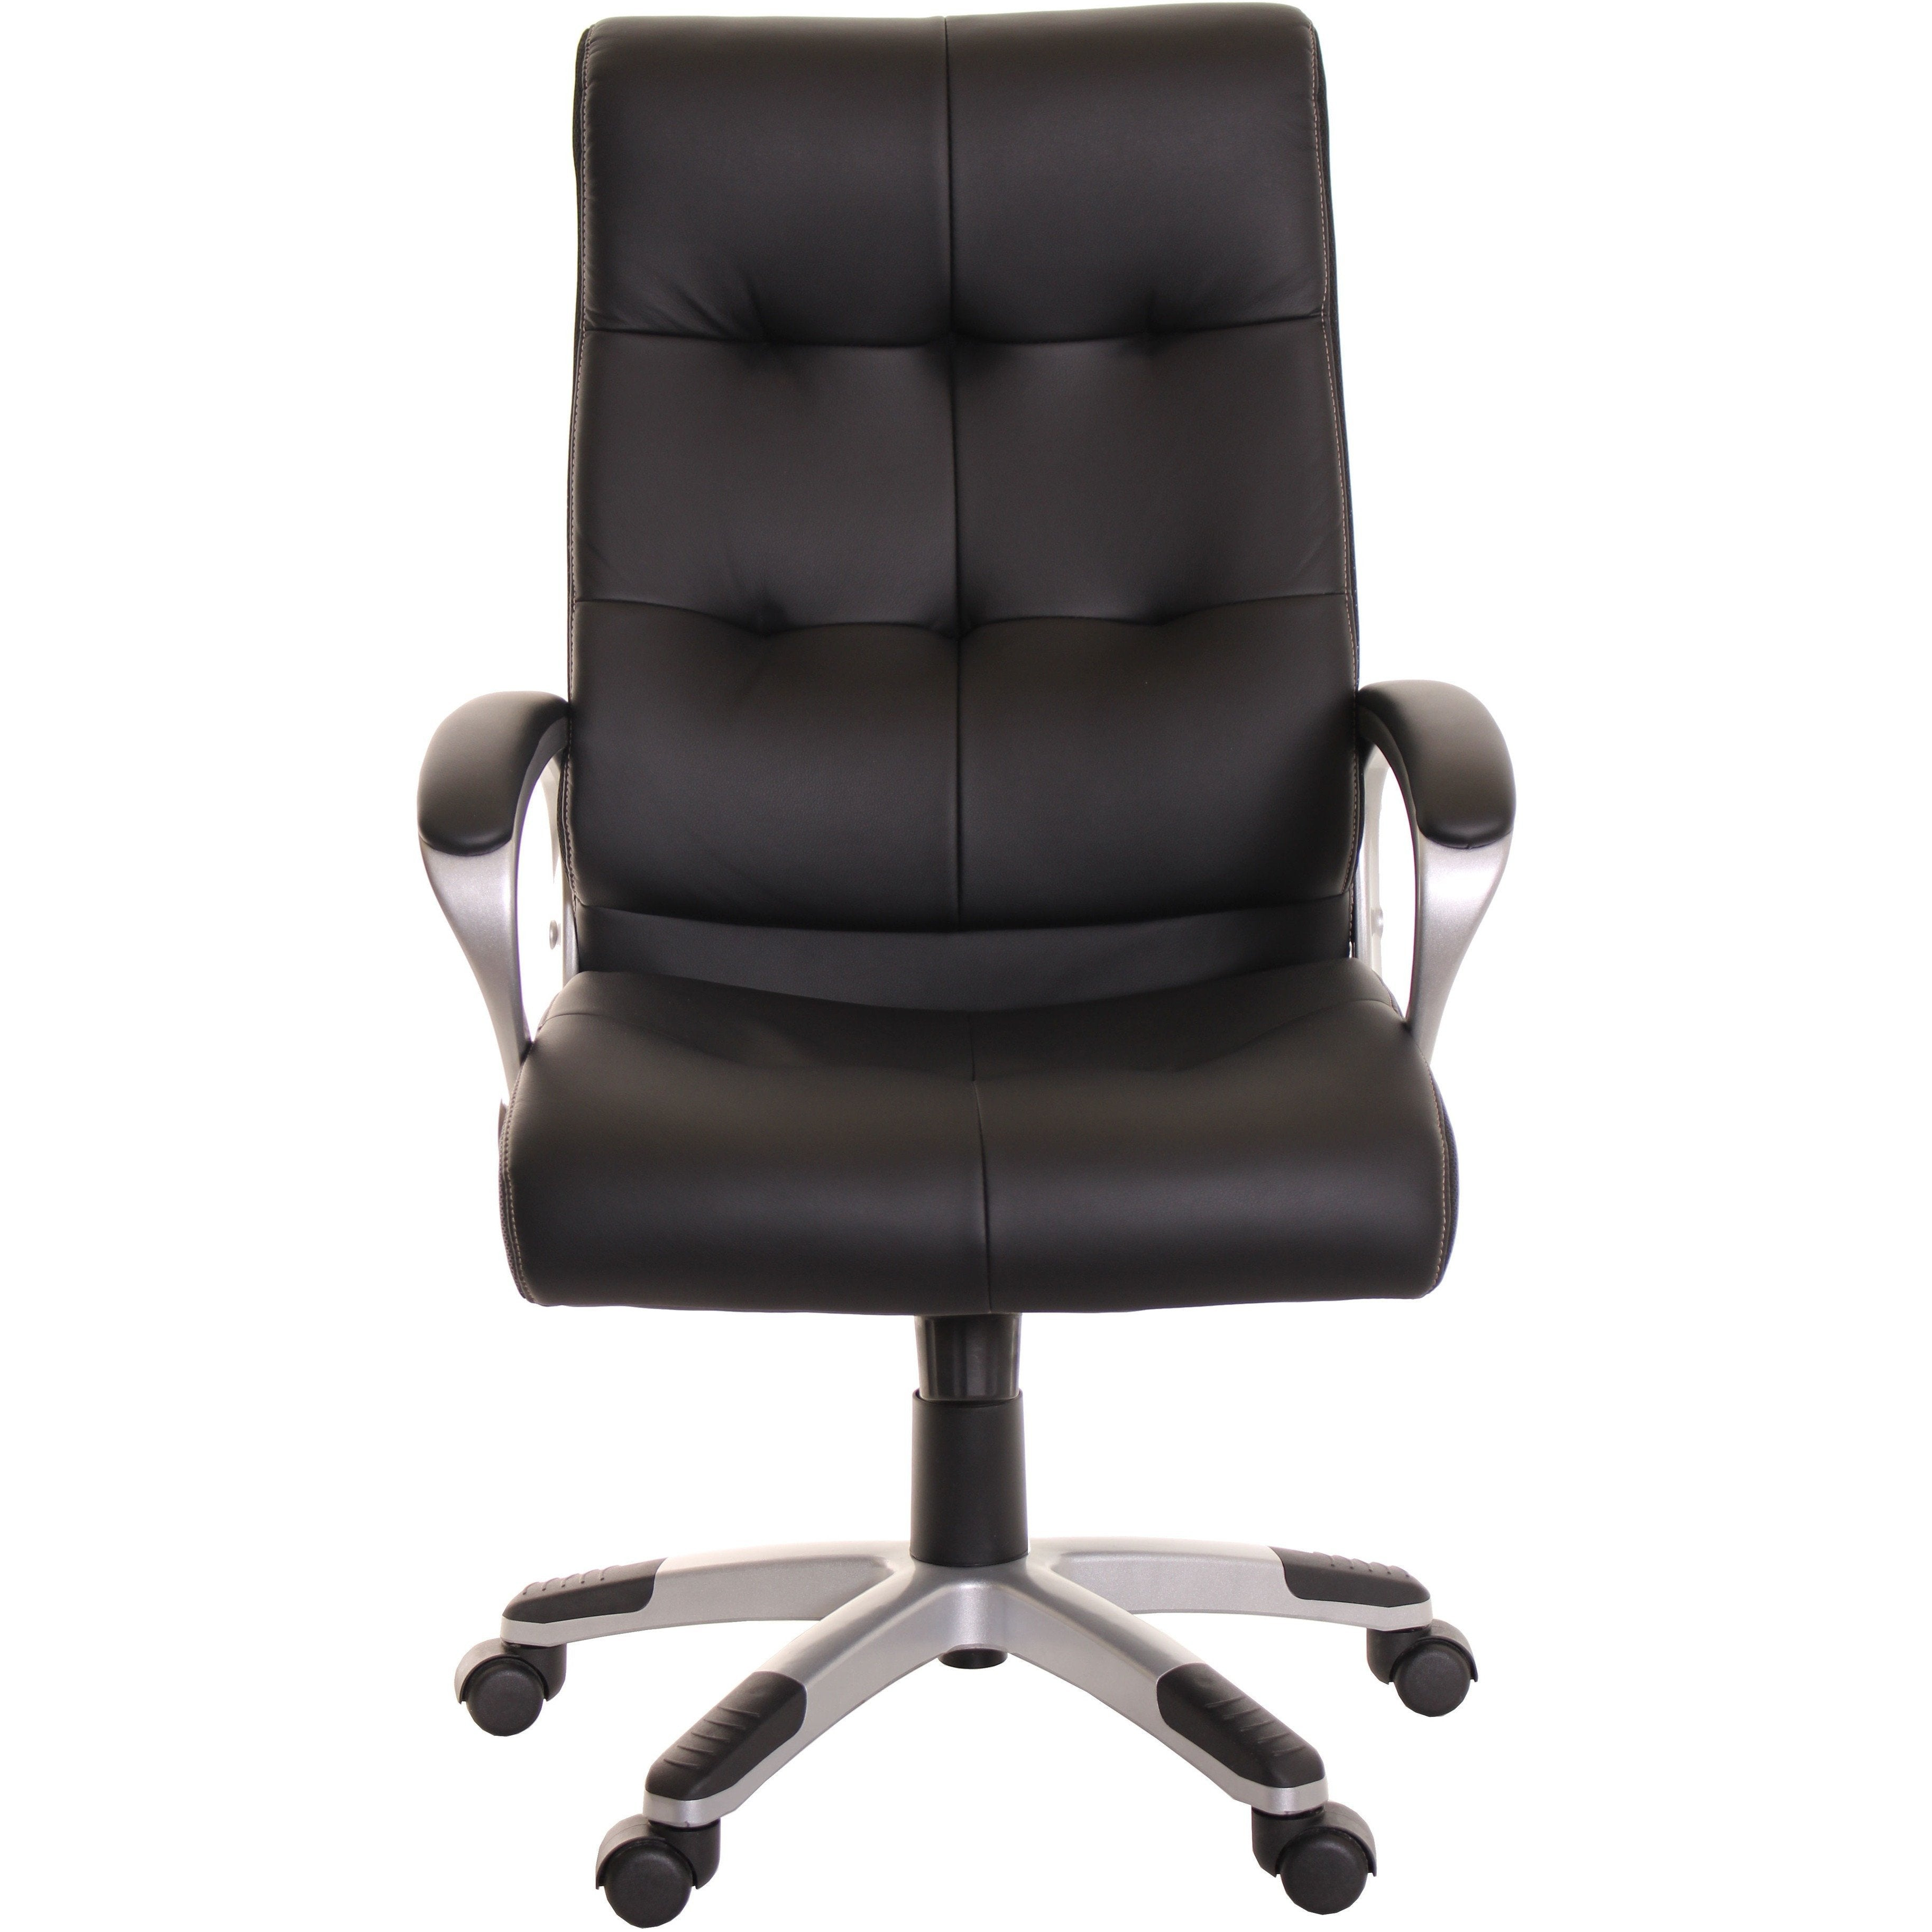 high back leather office task chair black computer chair by